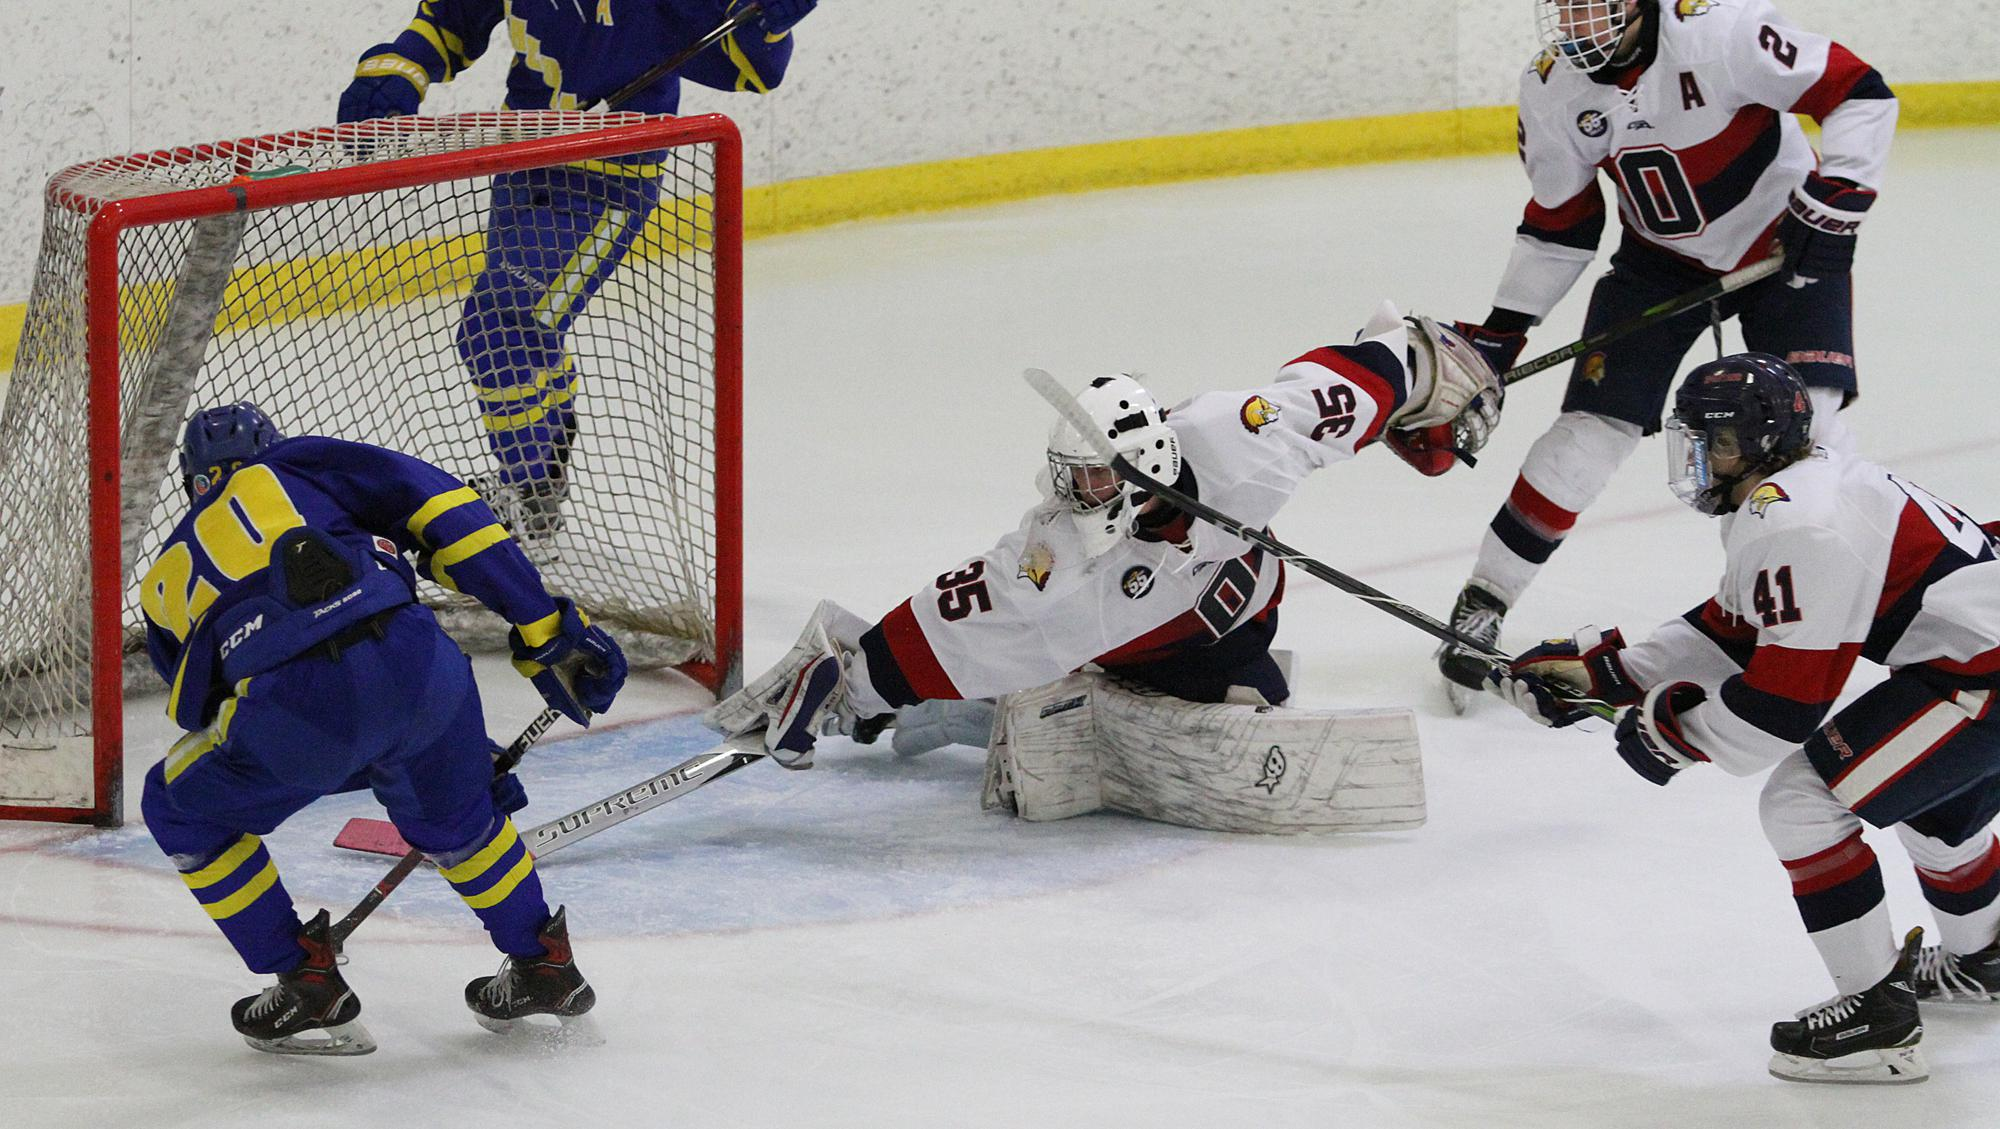 St. Cloud Cathedral forward Jack Smith buries a power-play goal in the first period of Saturday's game in Orono. Smith finished with two goals and six points in the Crusaders' 9-6 win over the Spartans. Photo by Drew Herron, SportsEngine